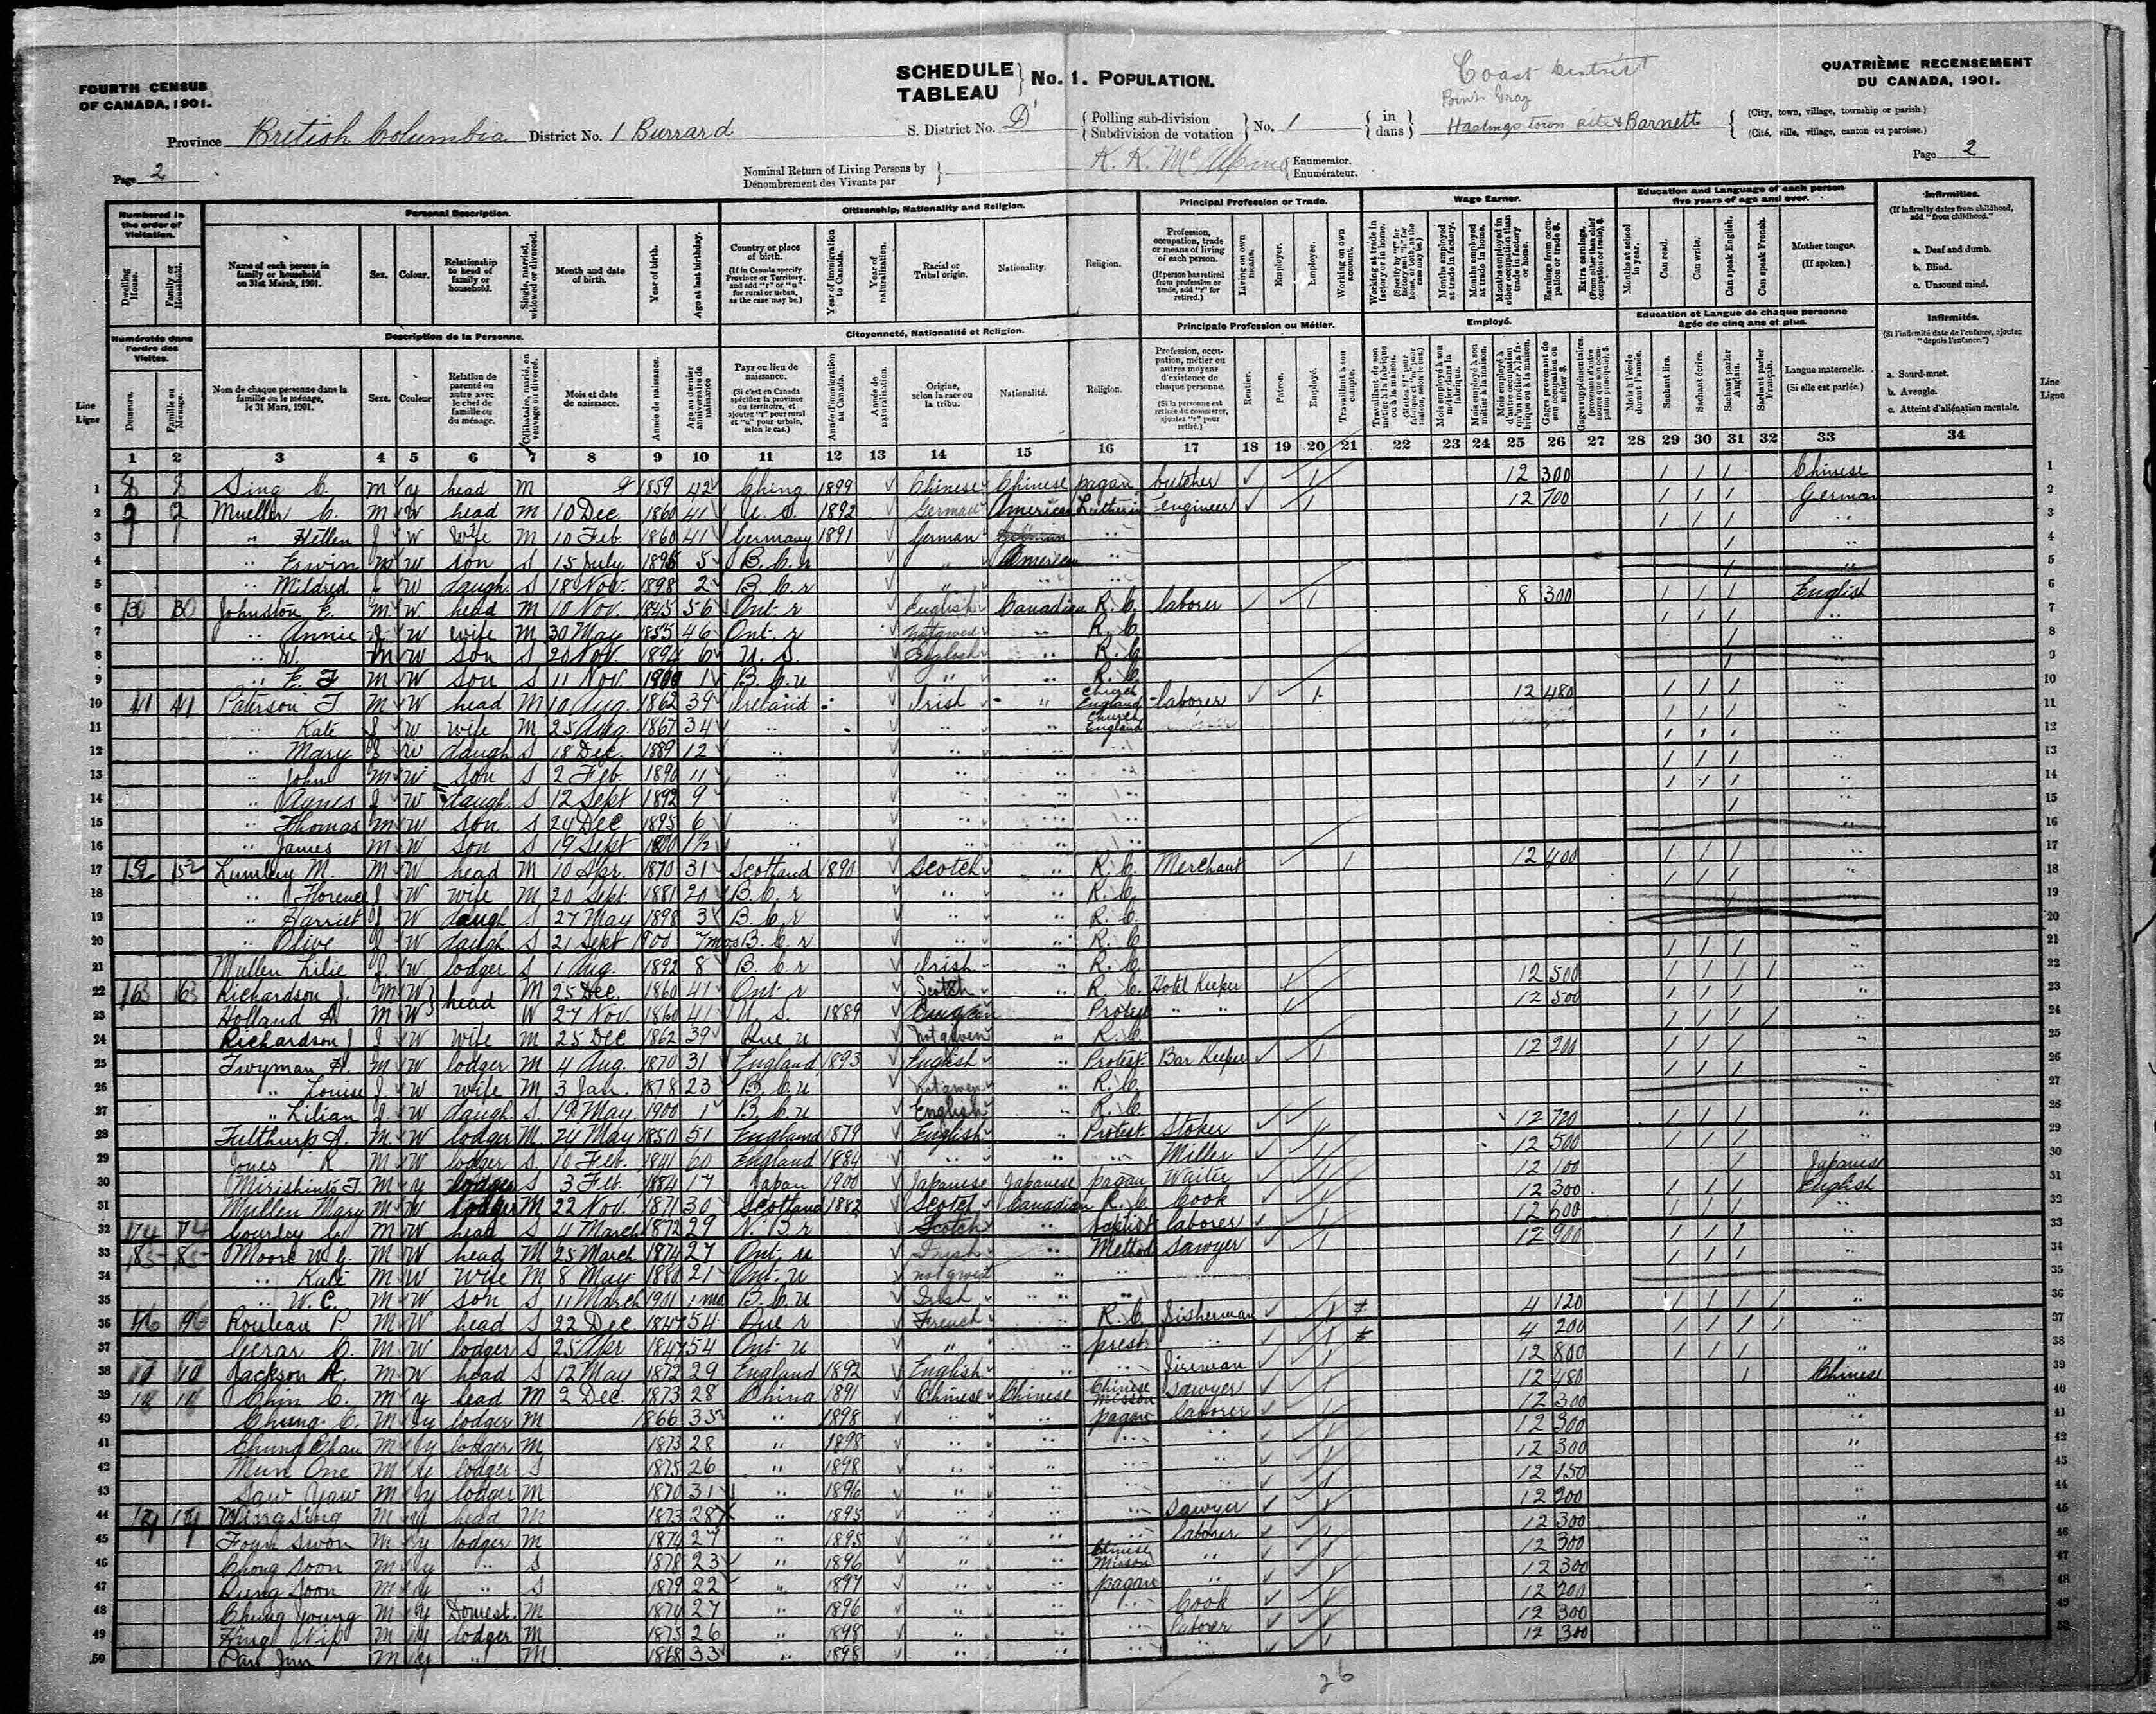 riverview essondale hospital past present future phoebe fulthorp the 1901 canada census finds alfred